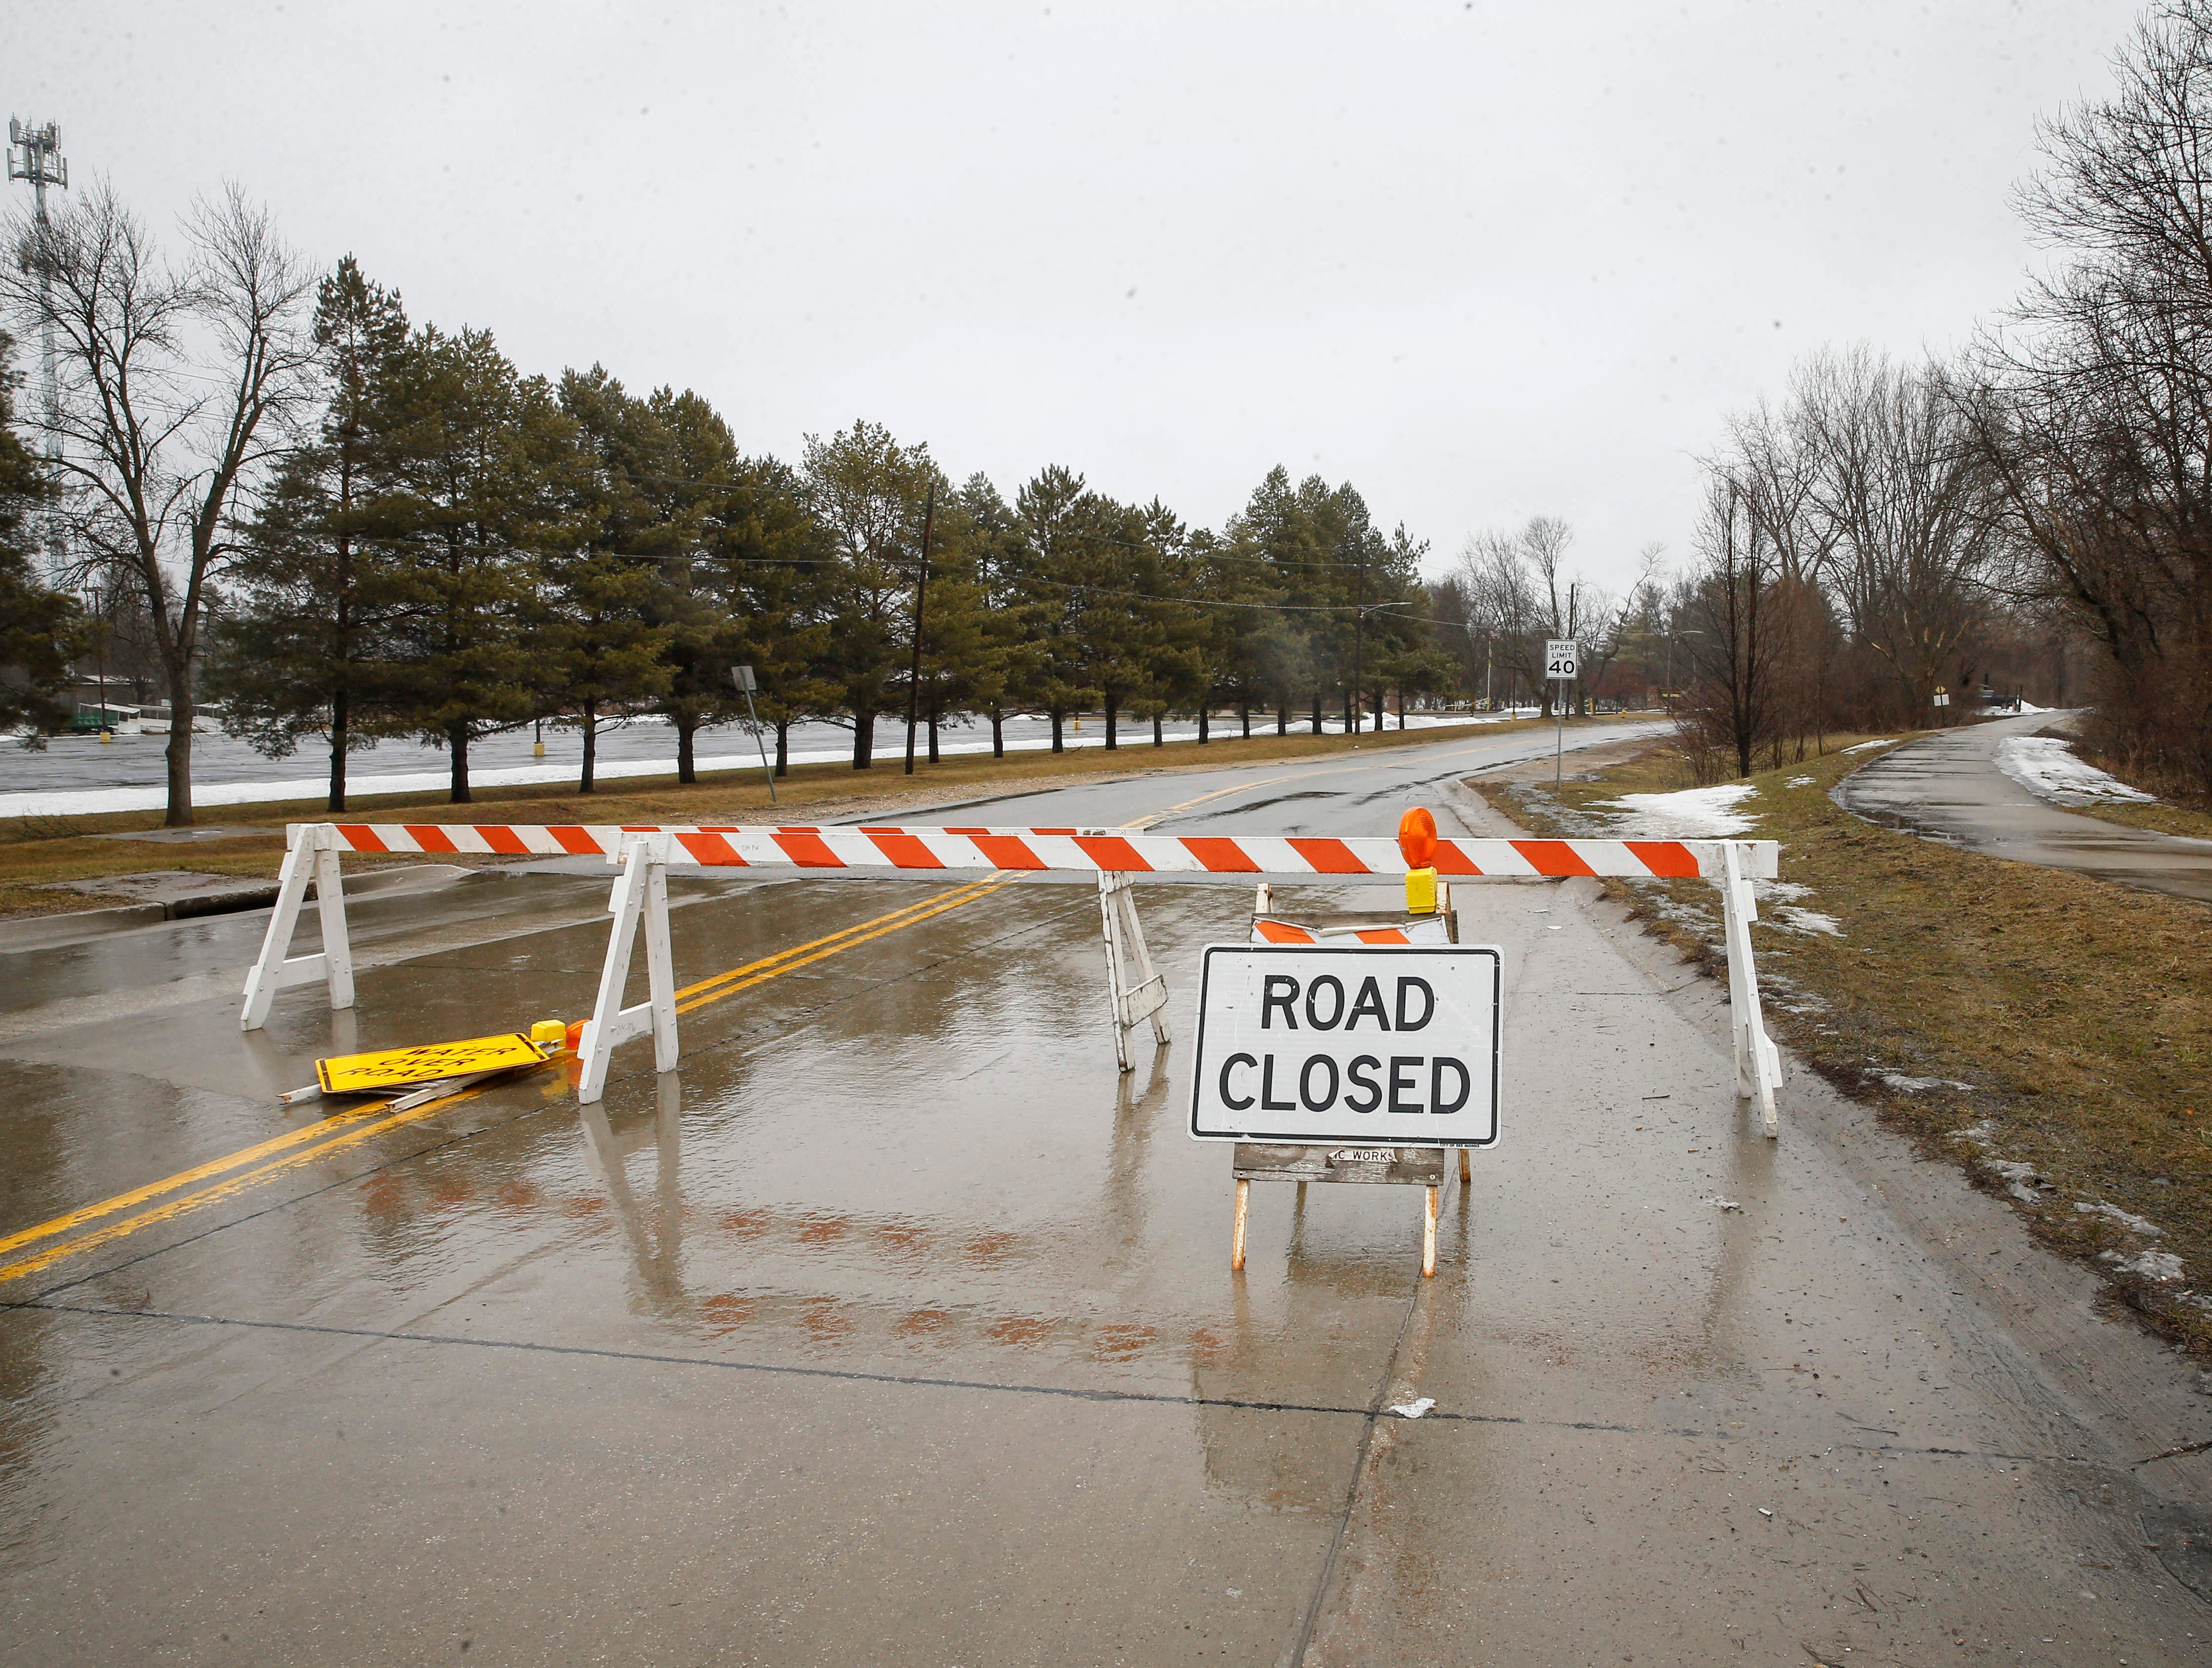 Portions of George Flagg Parkway in Des Moines were closed due to high water on Thursday, March 14, 2019.